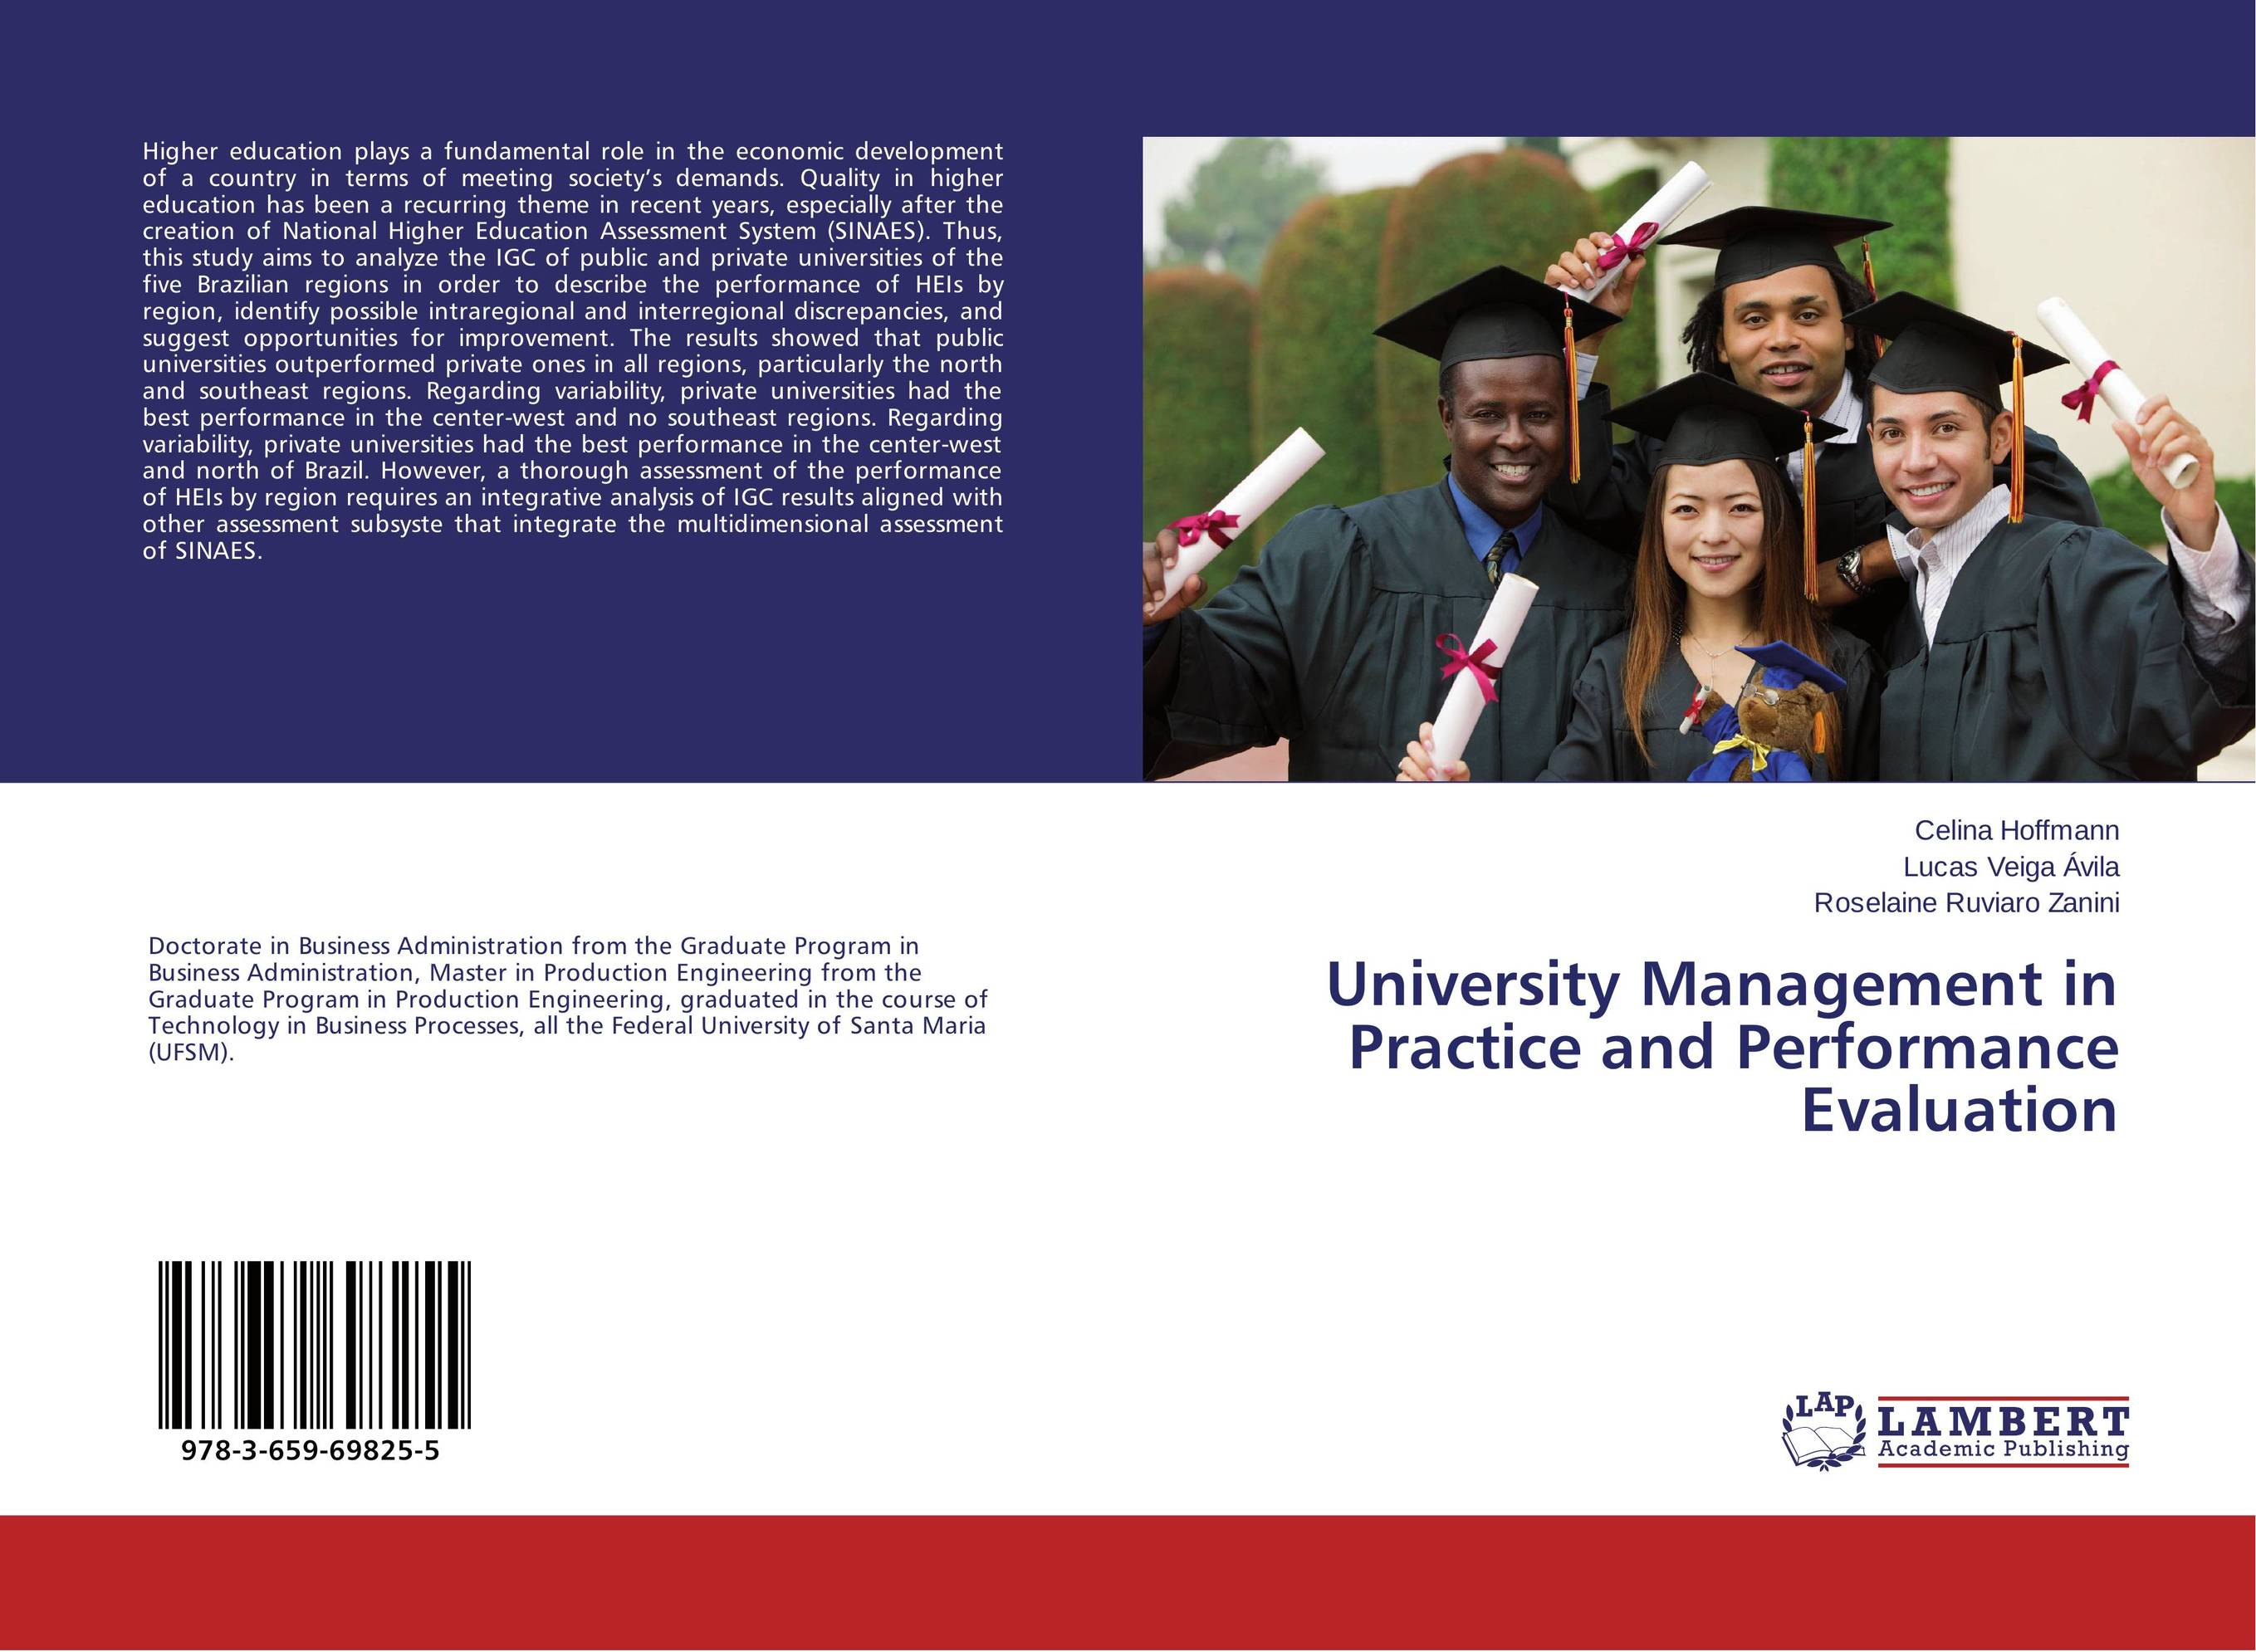 University Management in Practice and Performance Evaluation